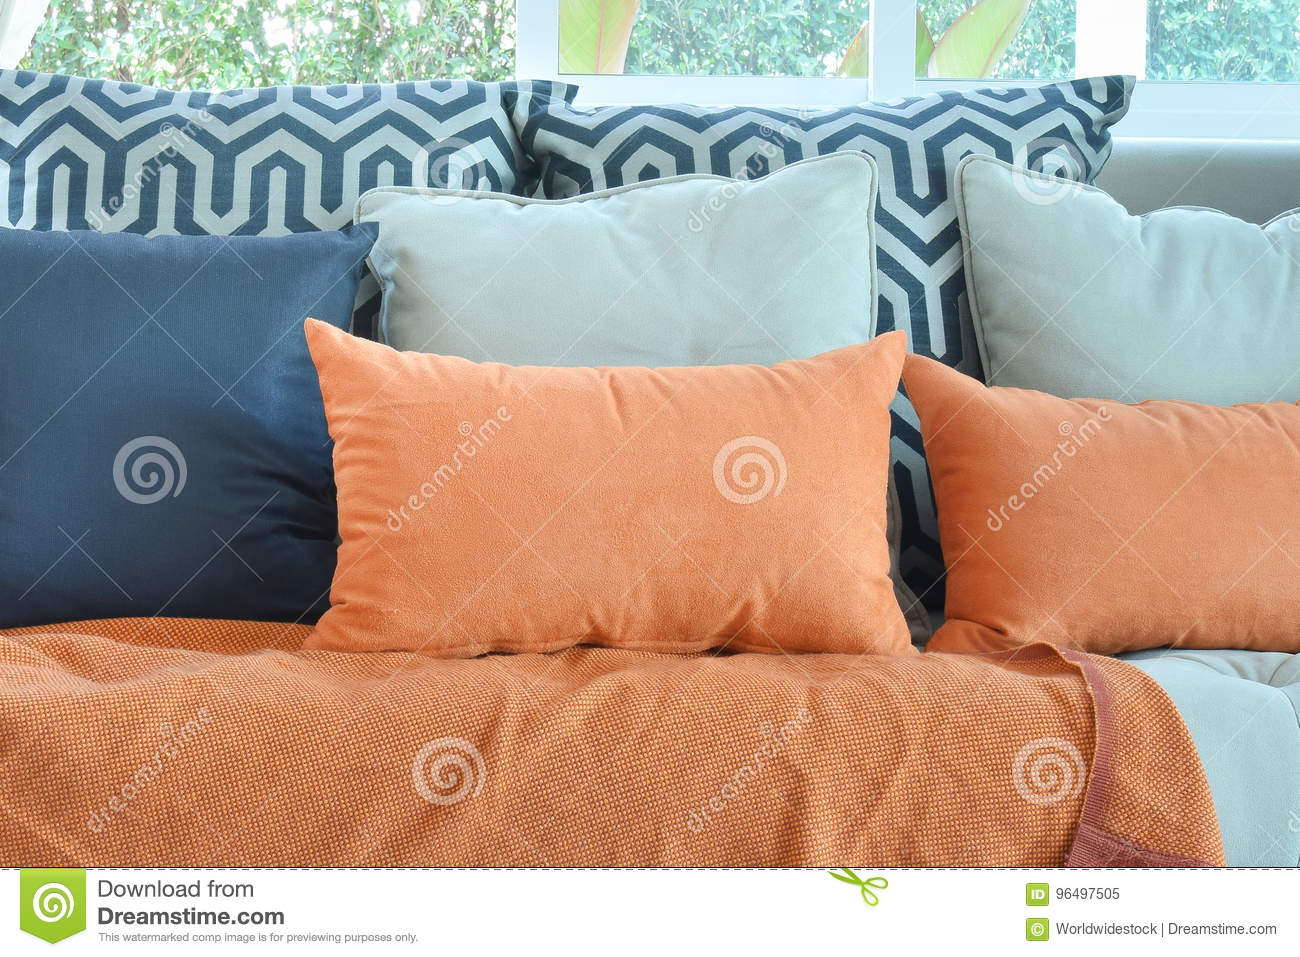 Tremendous Modern Living Room With Brown And Orange Tweed Sofa Stock Onthecornerstone Fun Painted Chair Ideas Images Onthecornerstoneorg